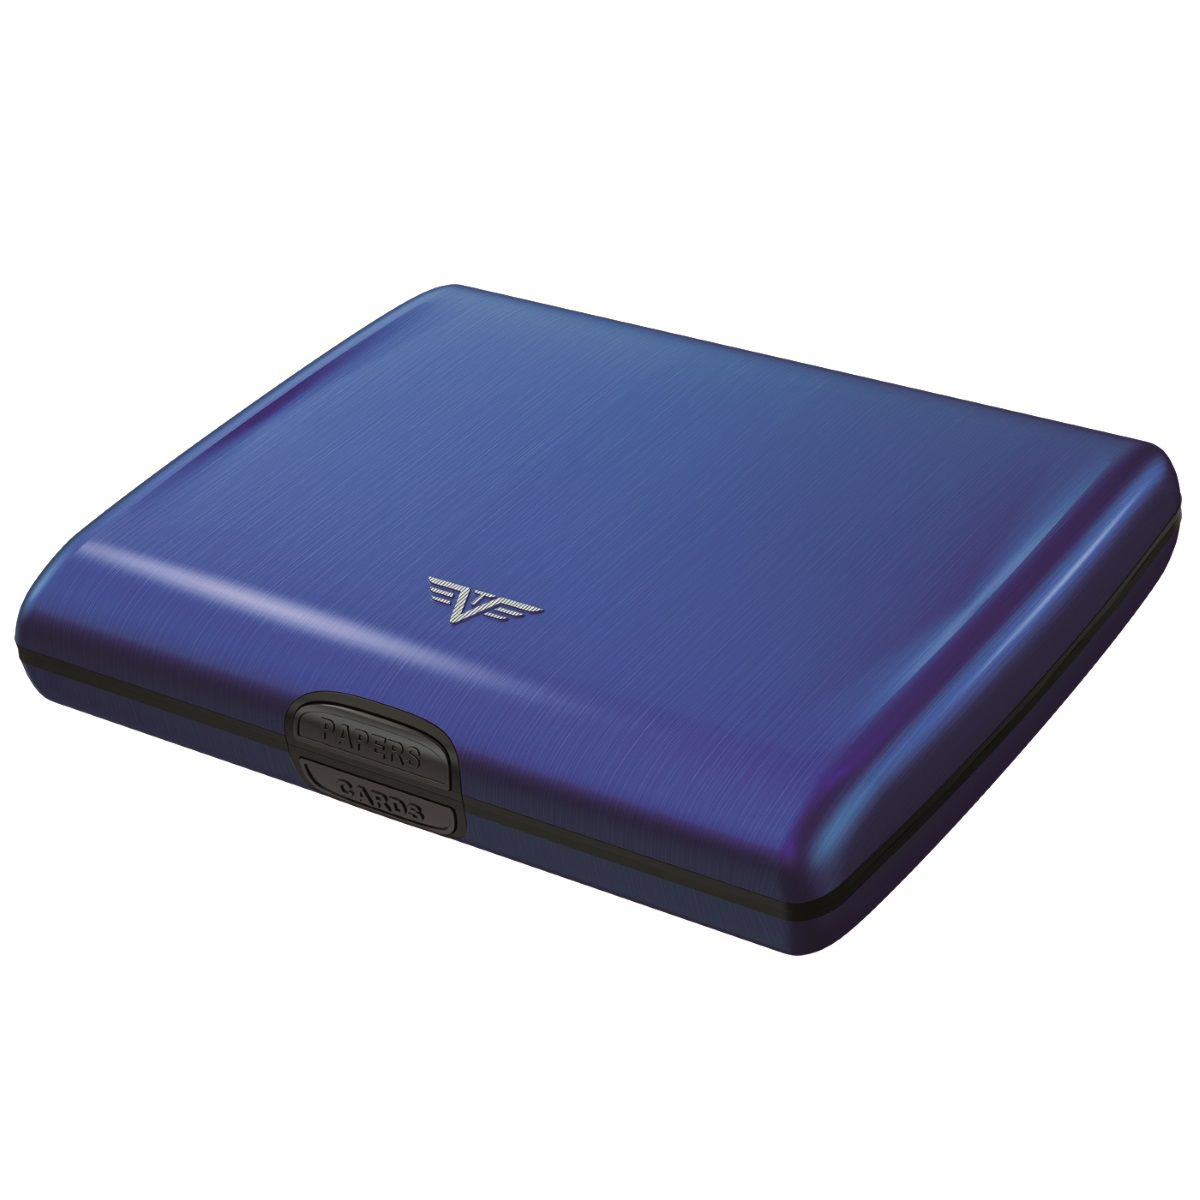 TRU VIRTU Aluminum Wallet Ray - Blue